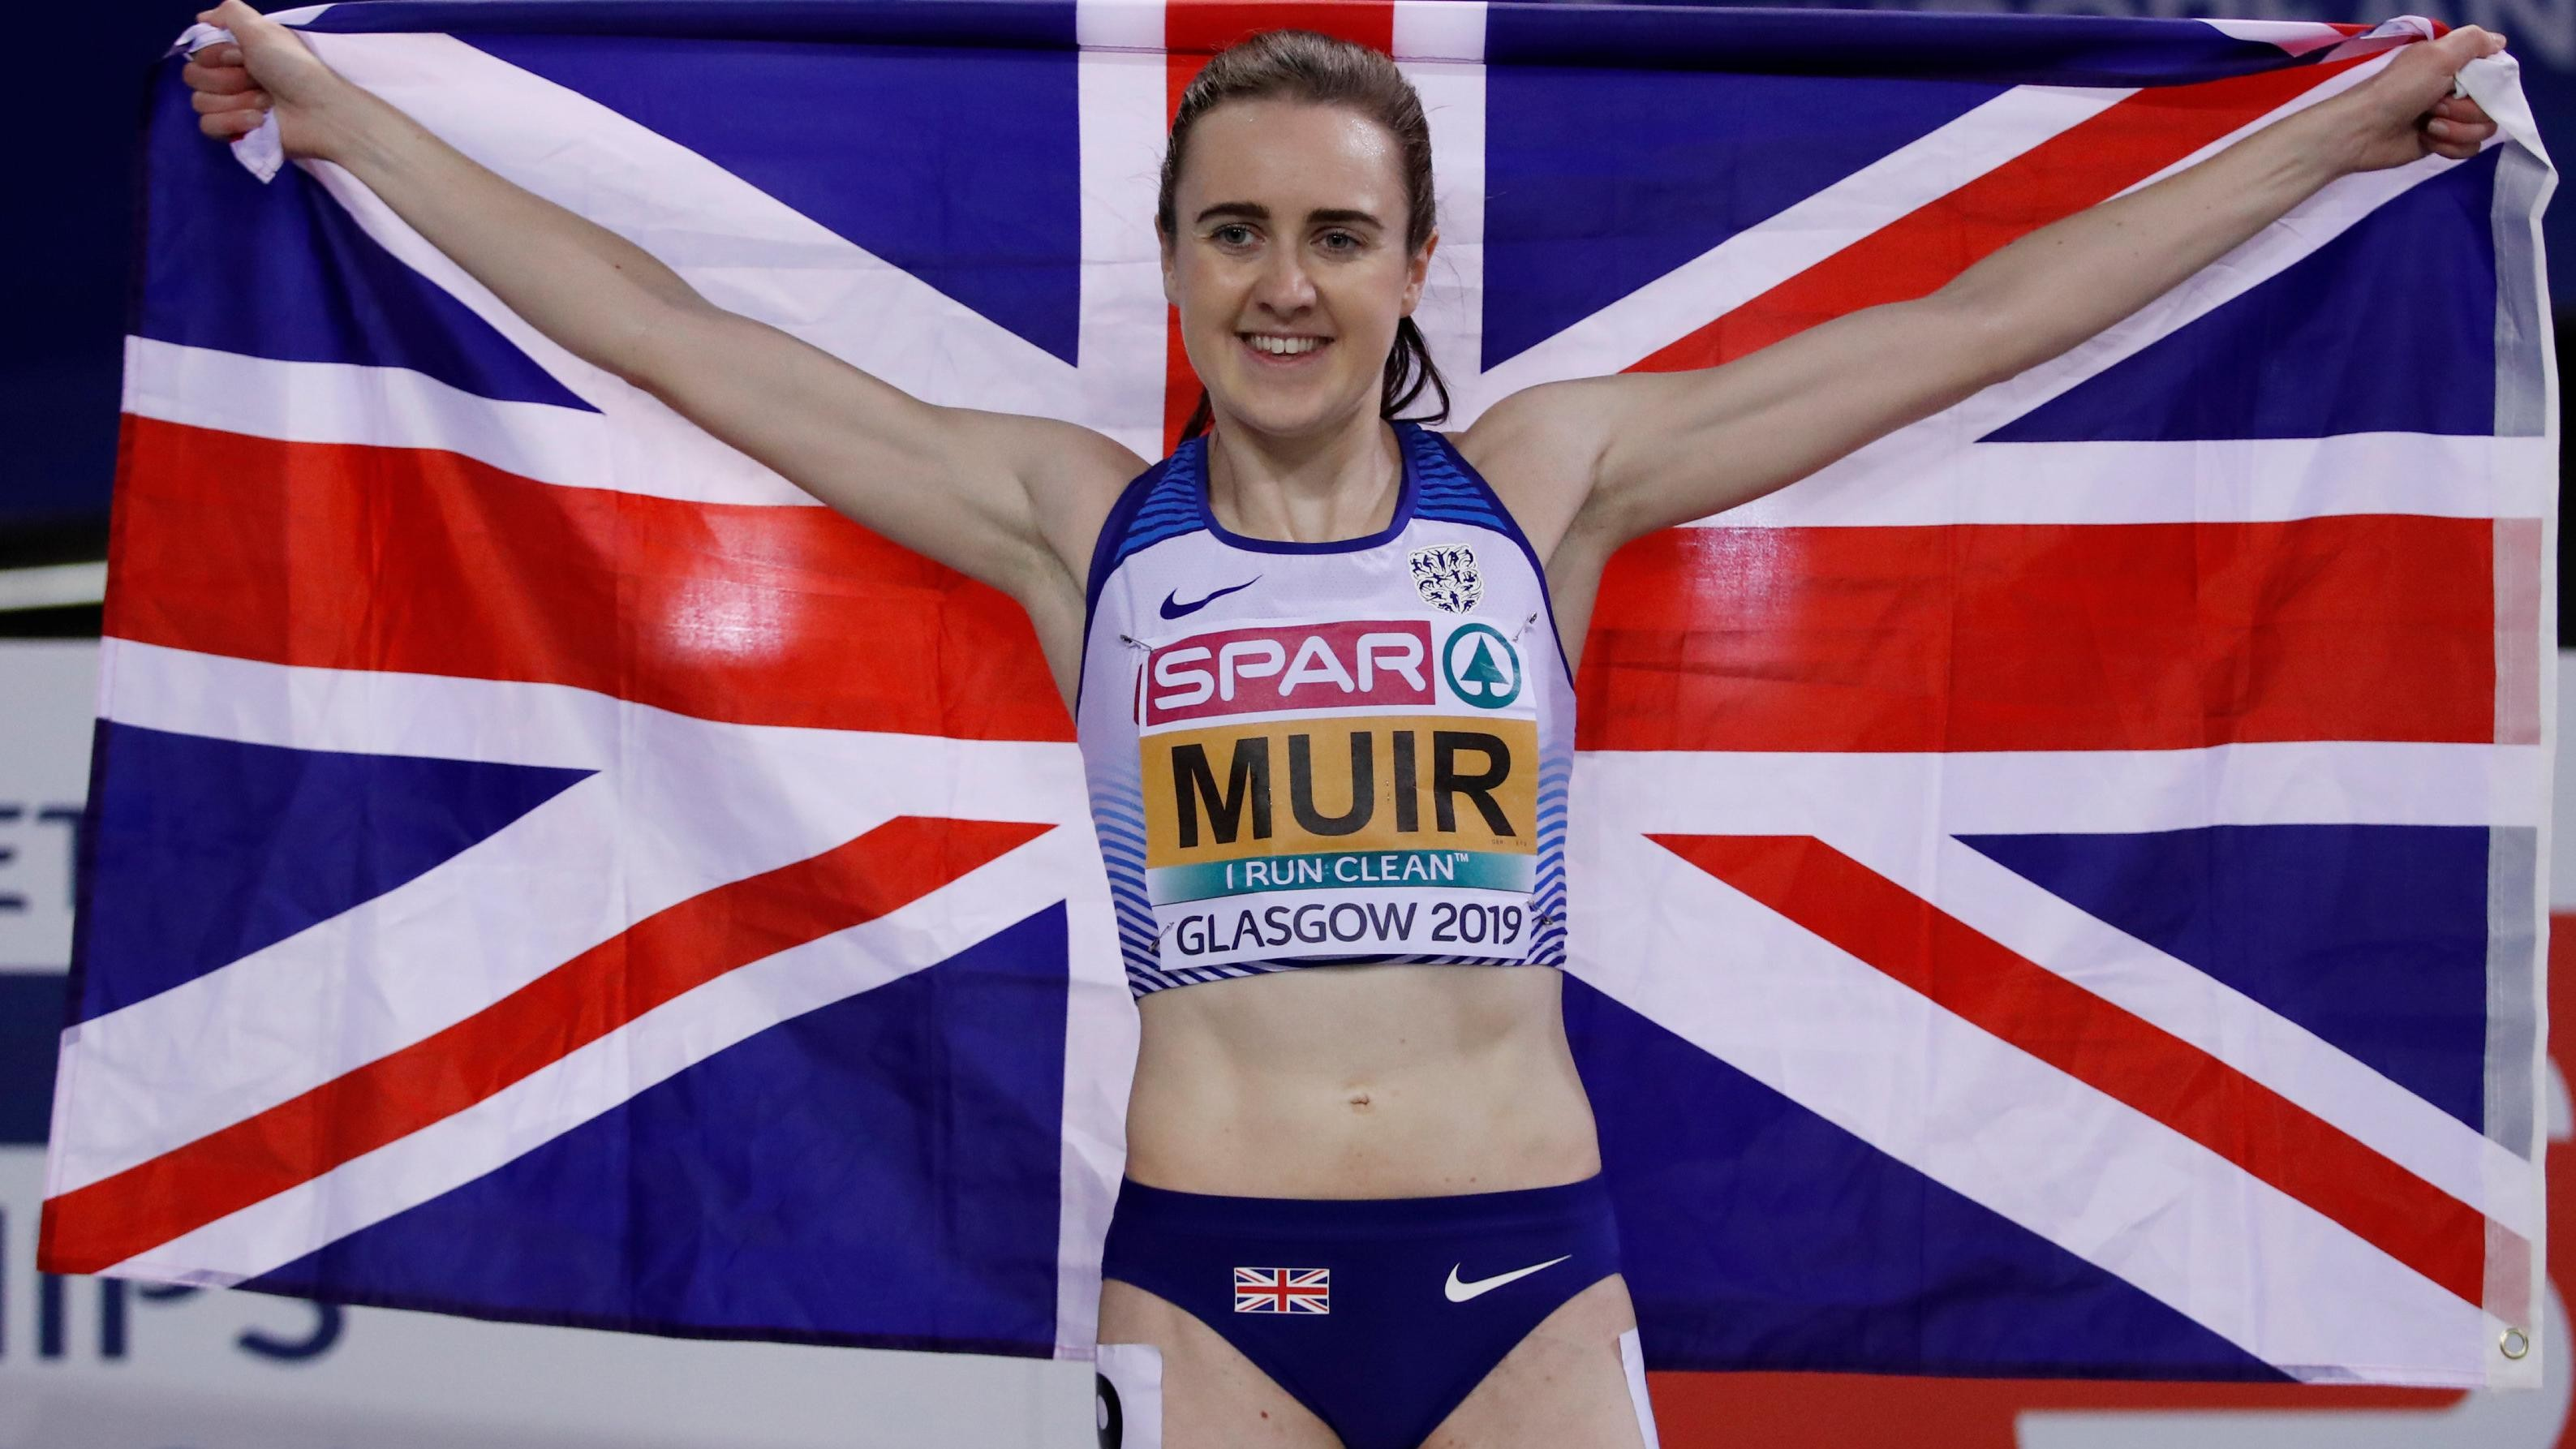 Laura Muir is ready to race the Vitality Westminster Mile the world's biggest timed mile event